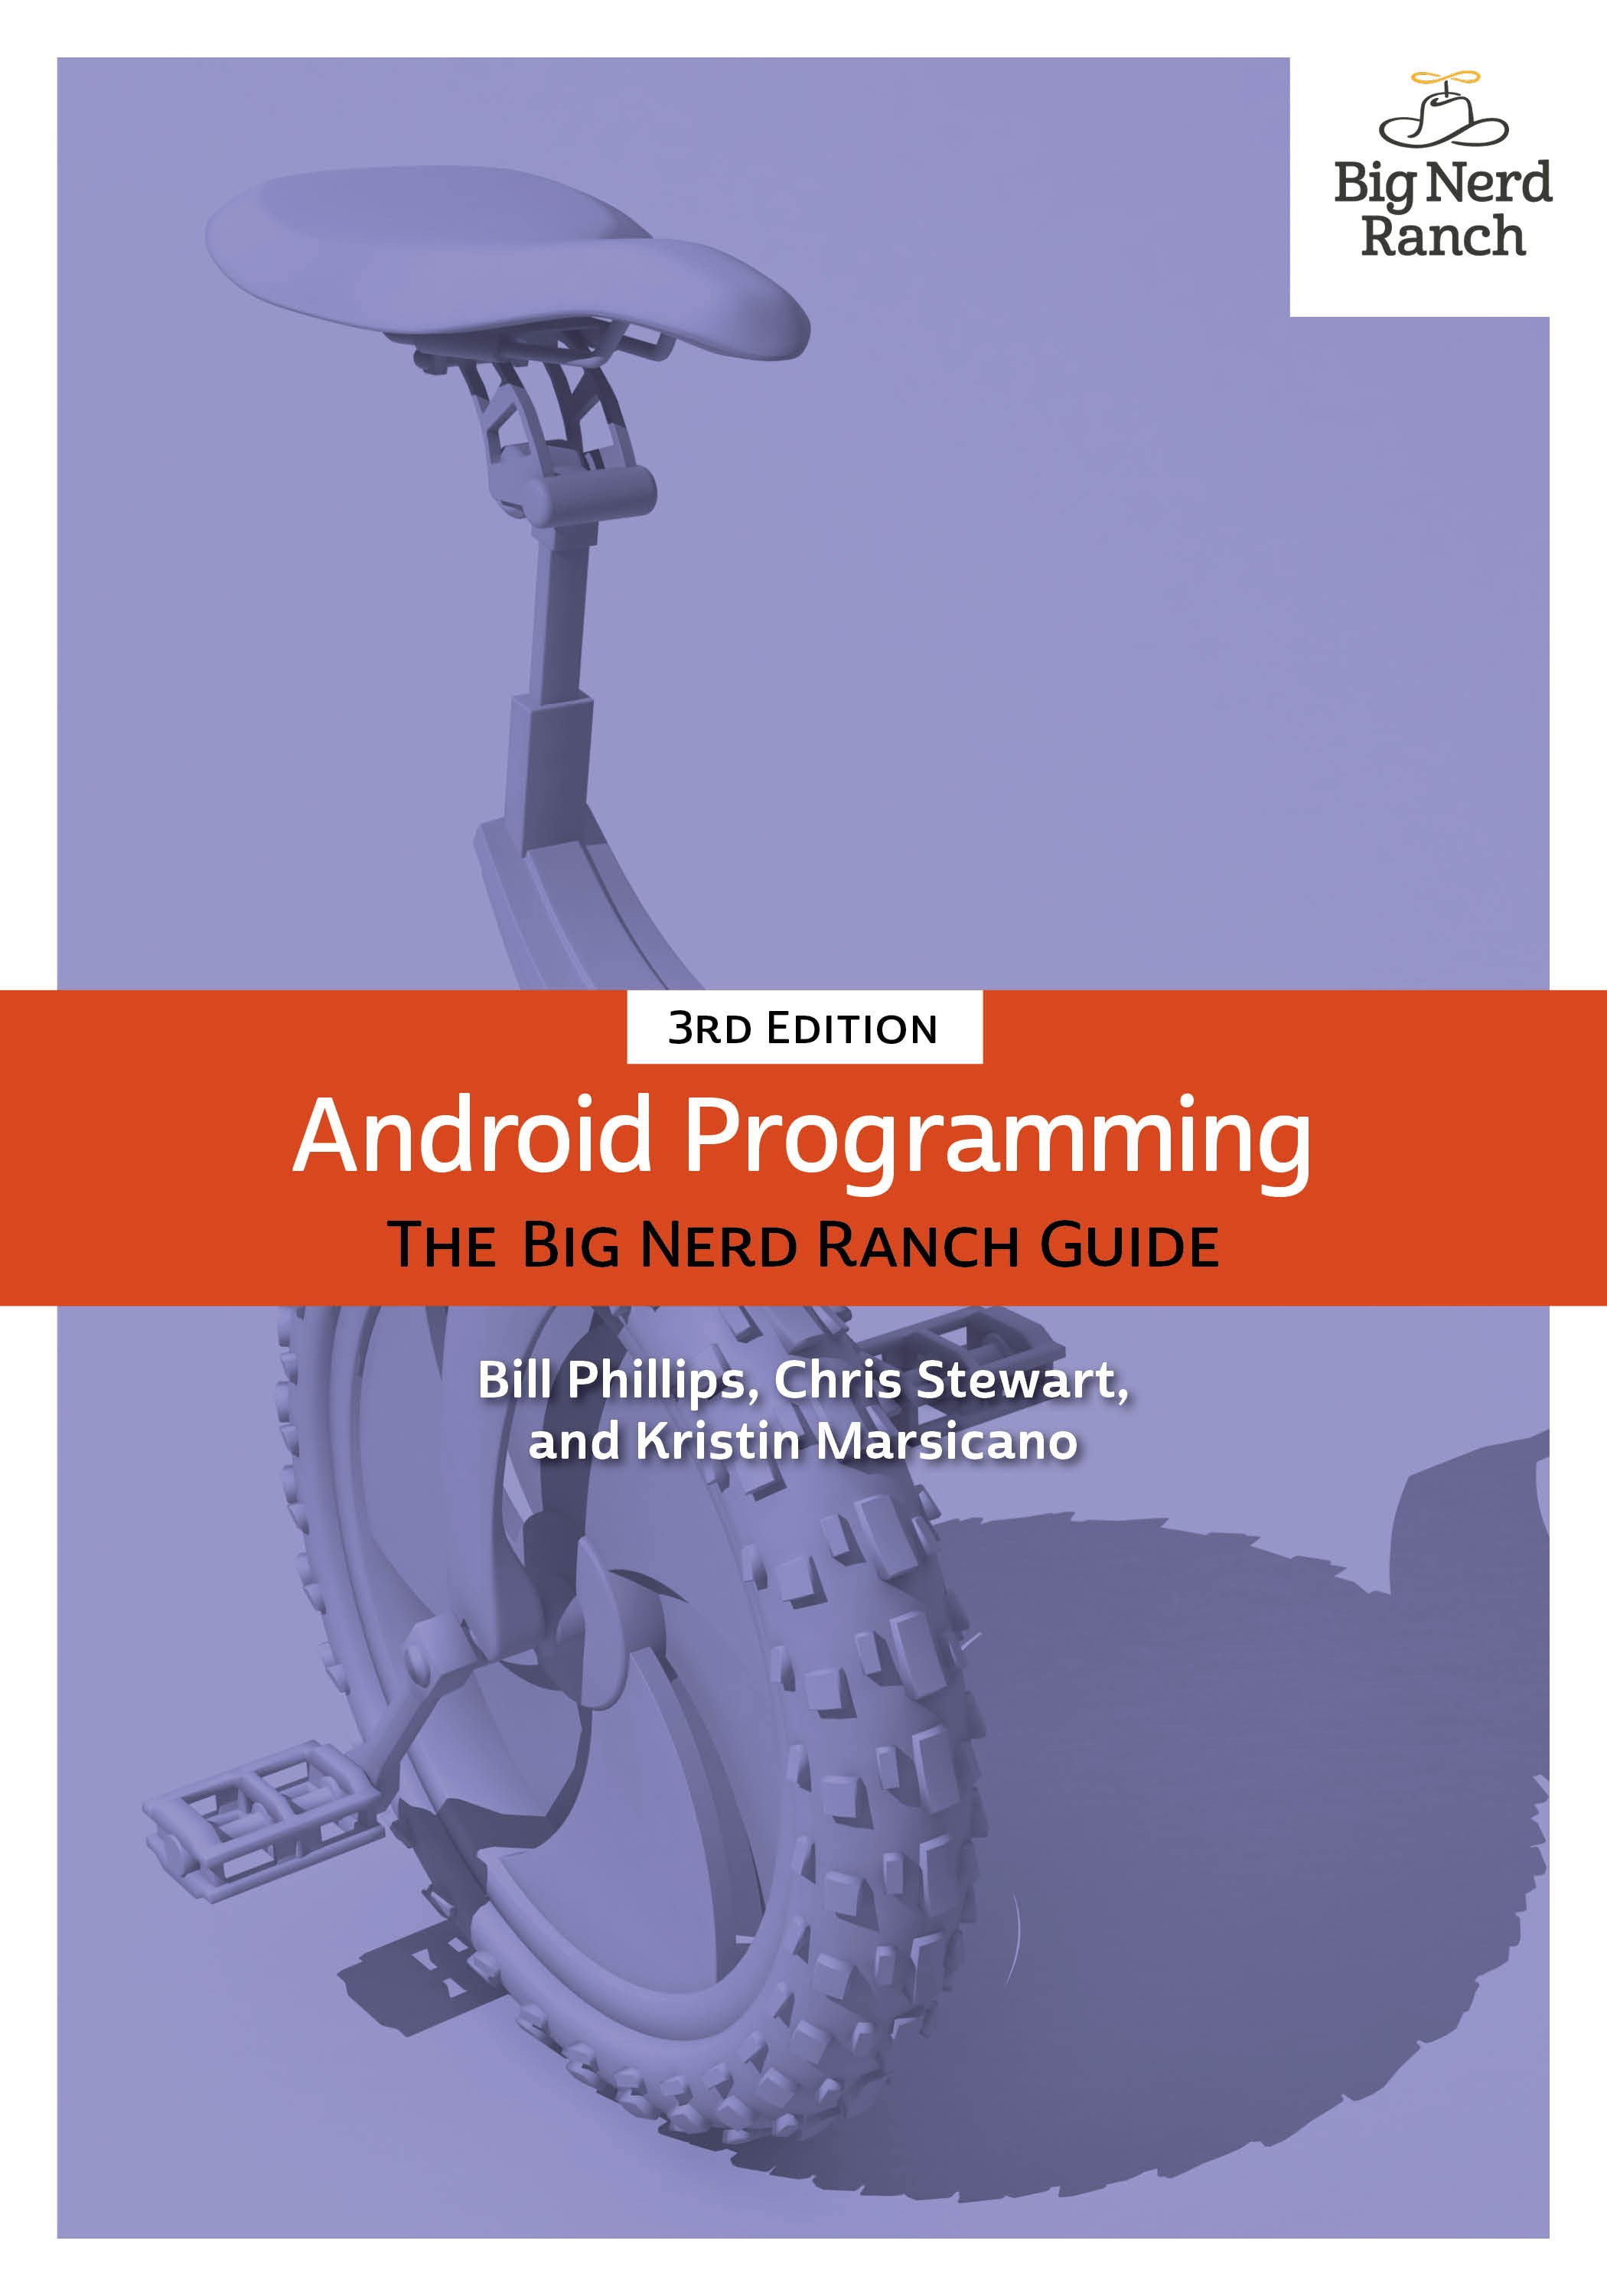 Android Programming: The Big Nerd Ranch Guide, 3rd Edition